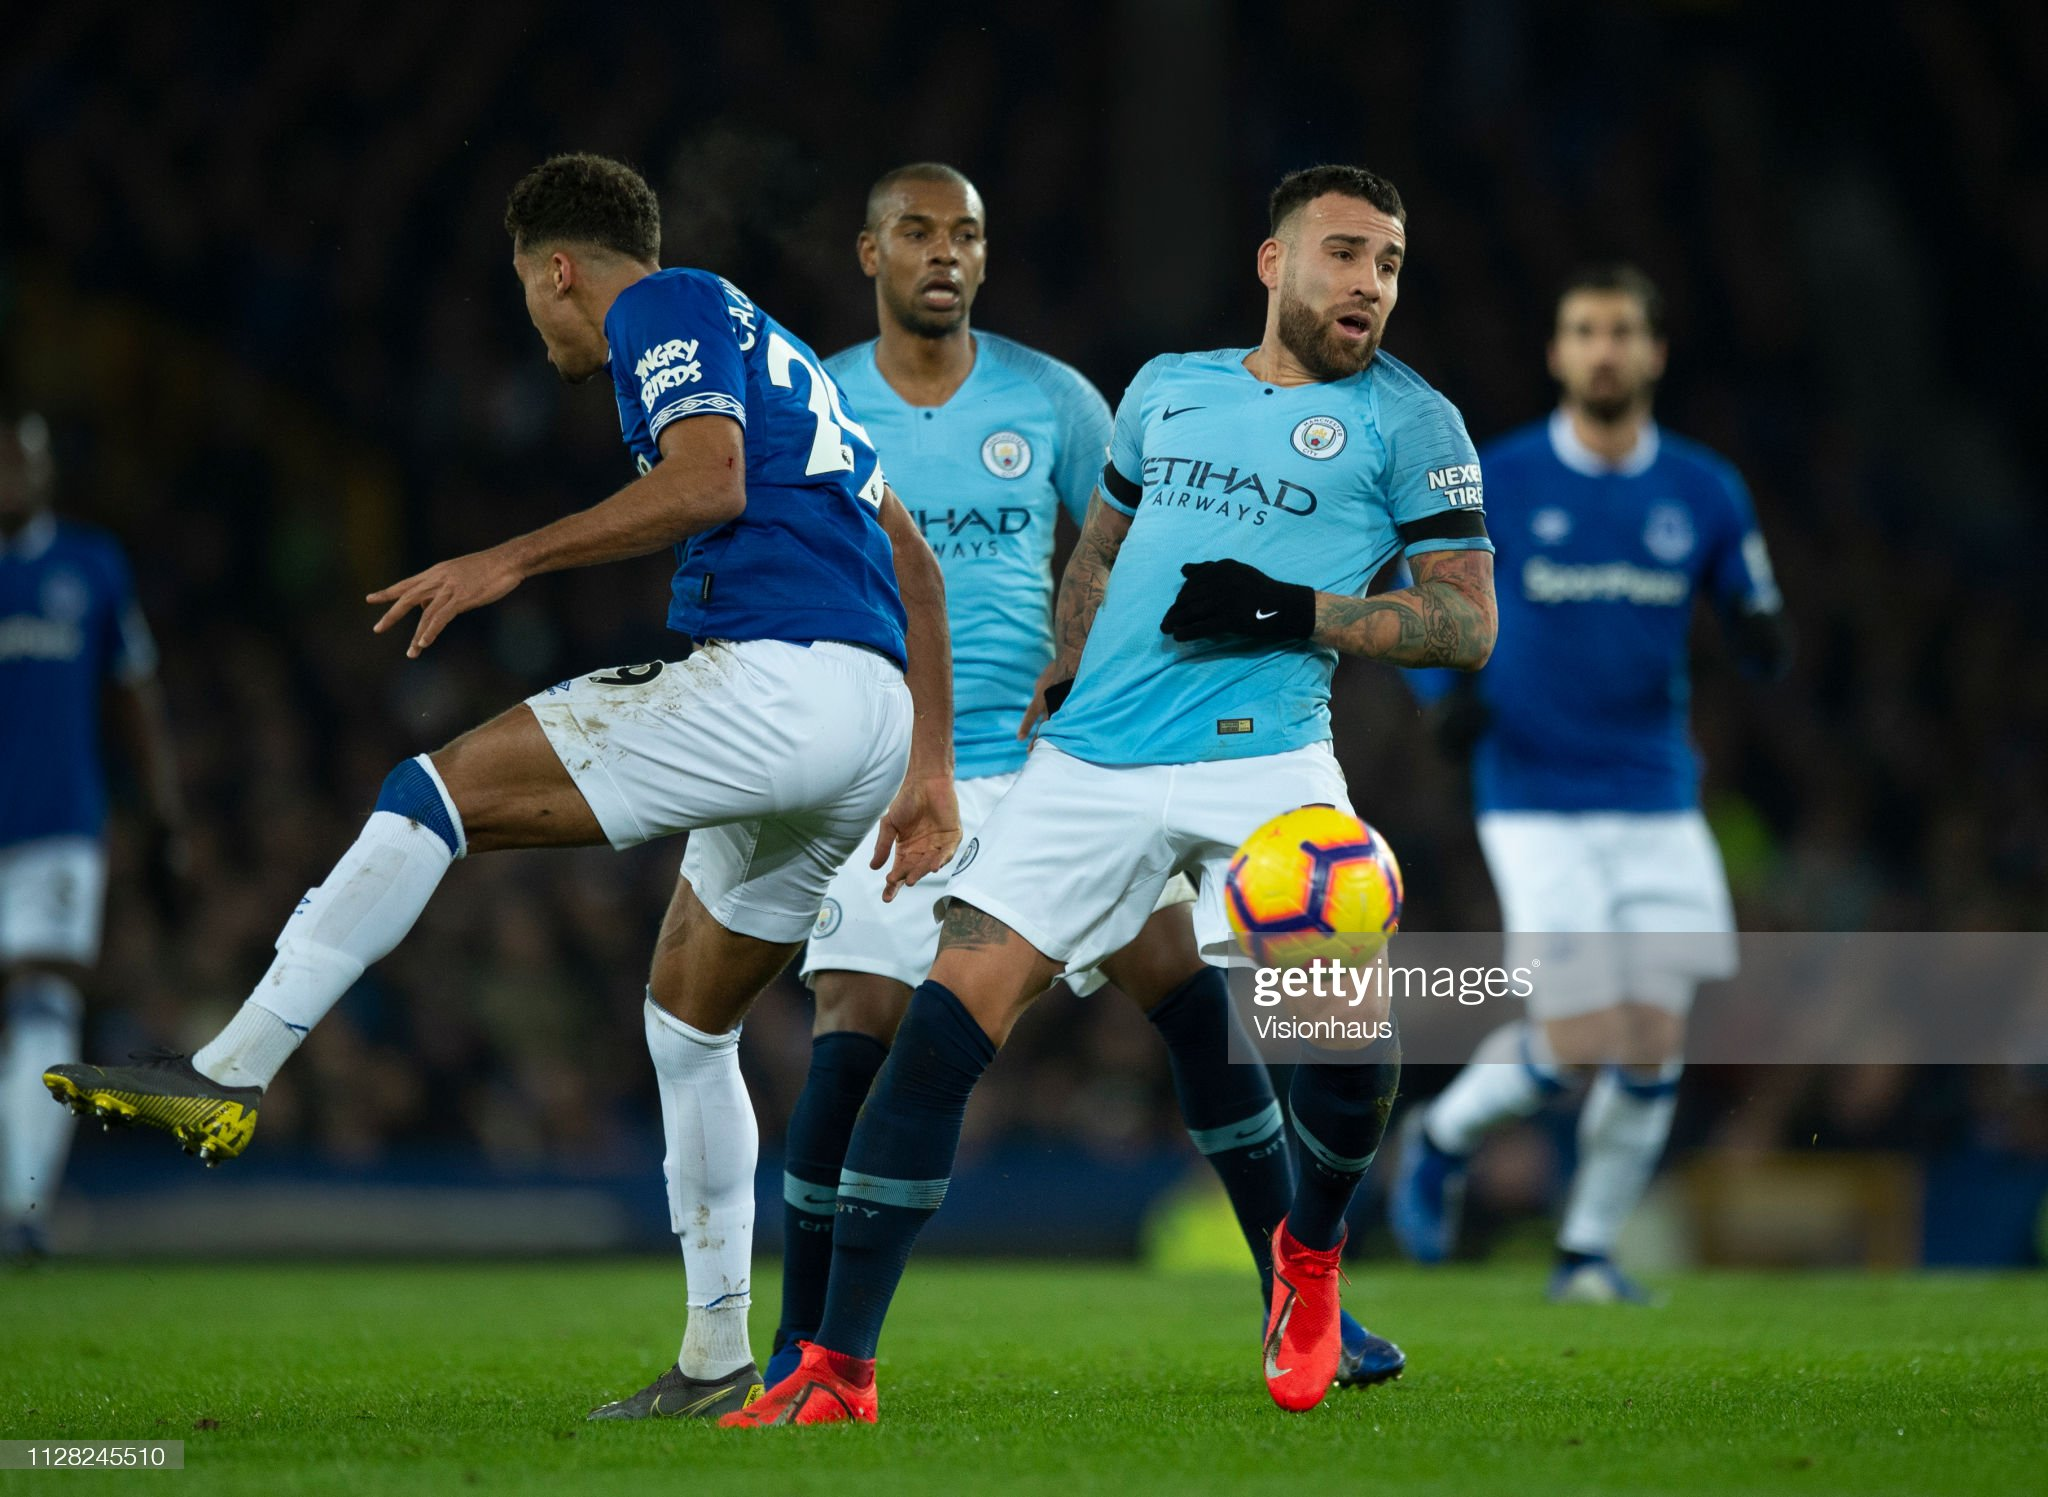 Everton v Manchester City preview, prediction and odds